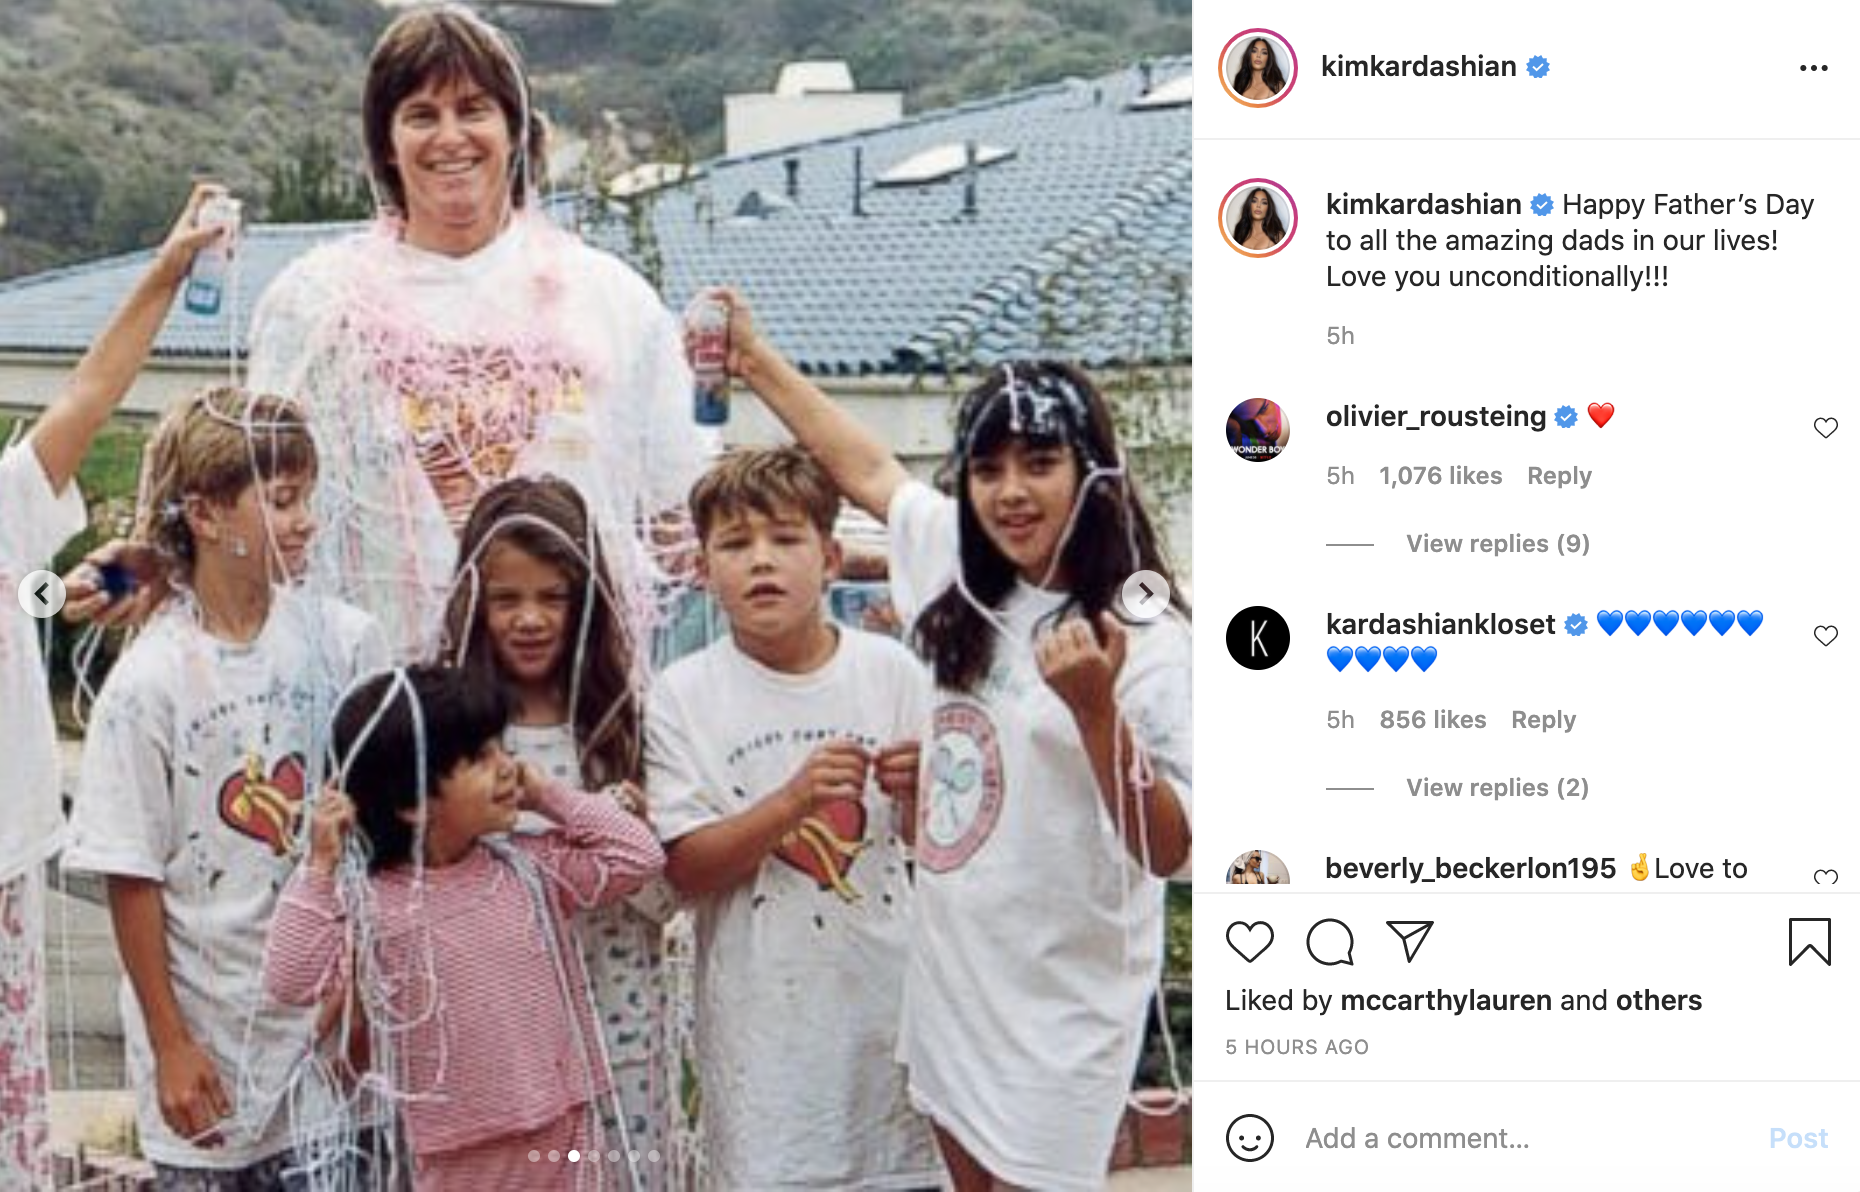 A throwback picture of Caitlyn Jenner on Kim Kardashian's Instagram